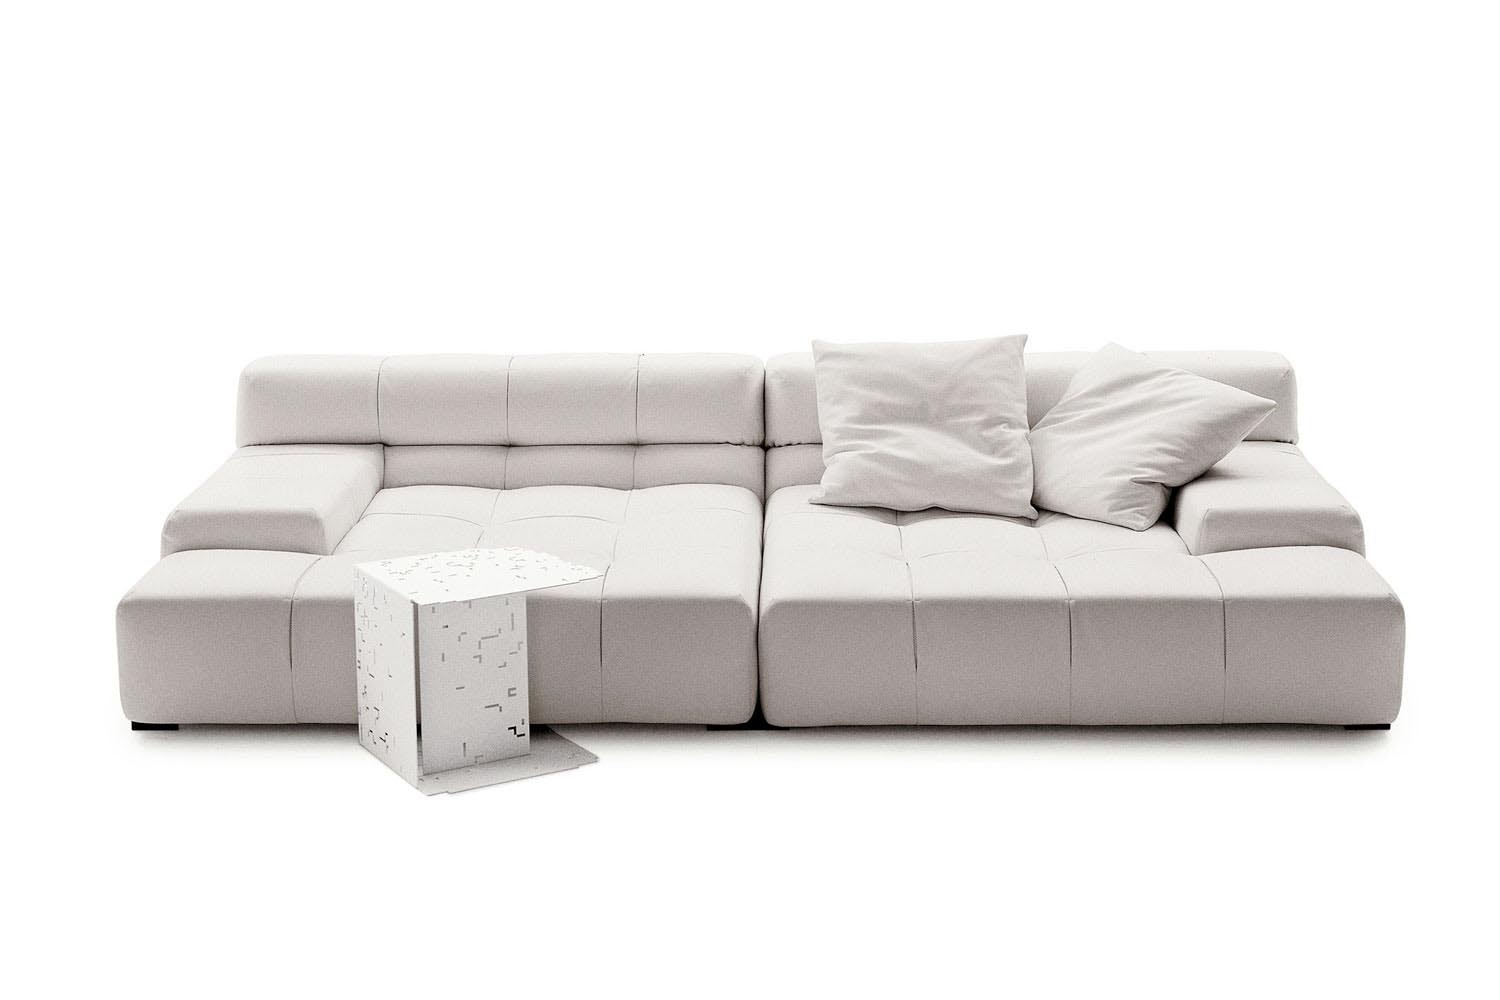 Tufty Time Leather Sofa By Patricia Urquiola For B B Italia Space